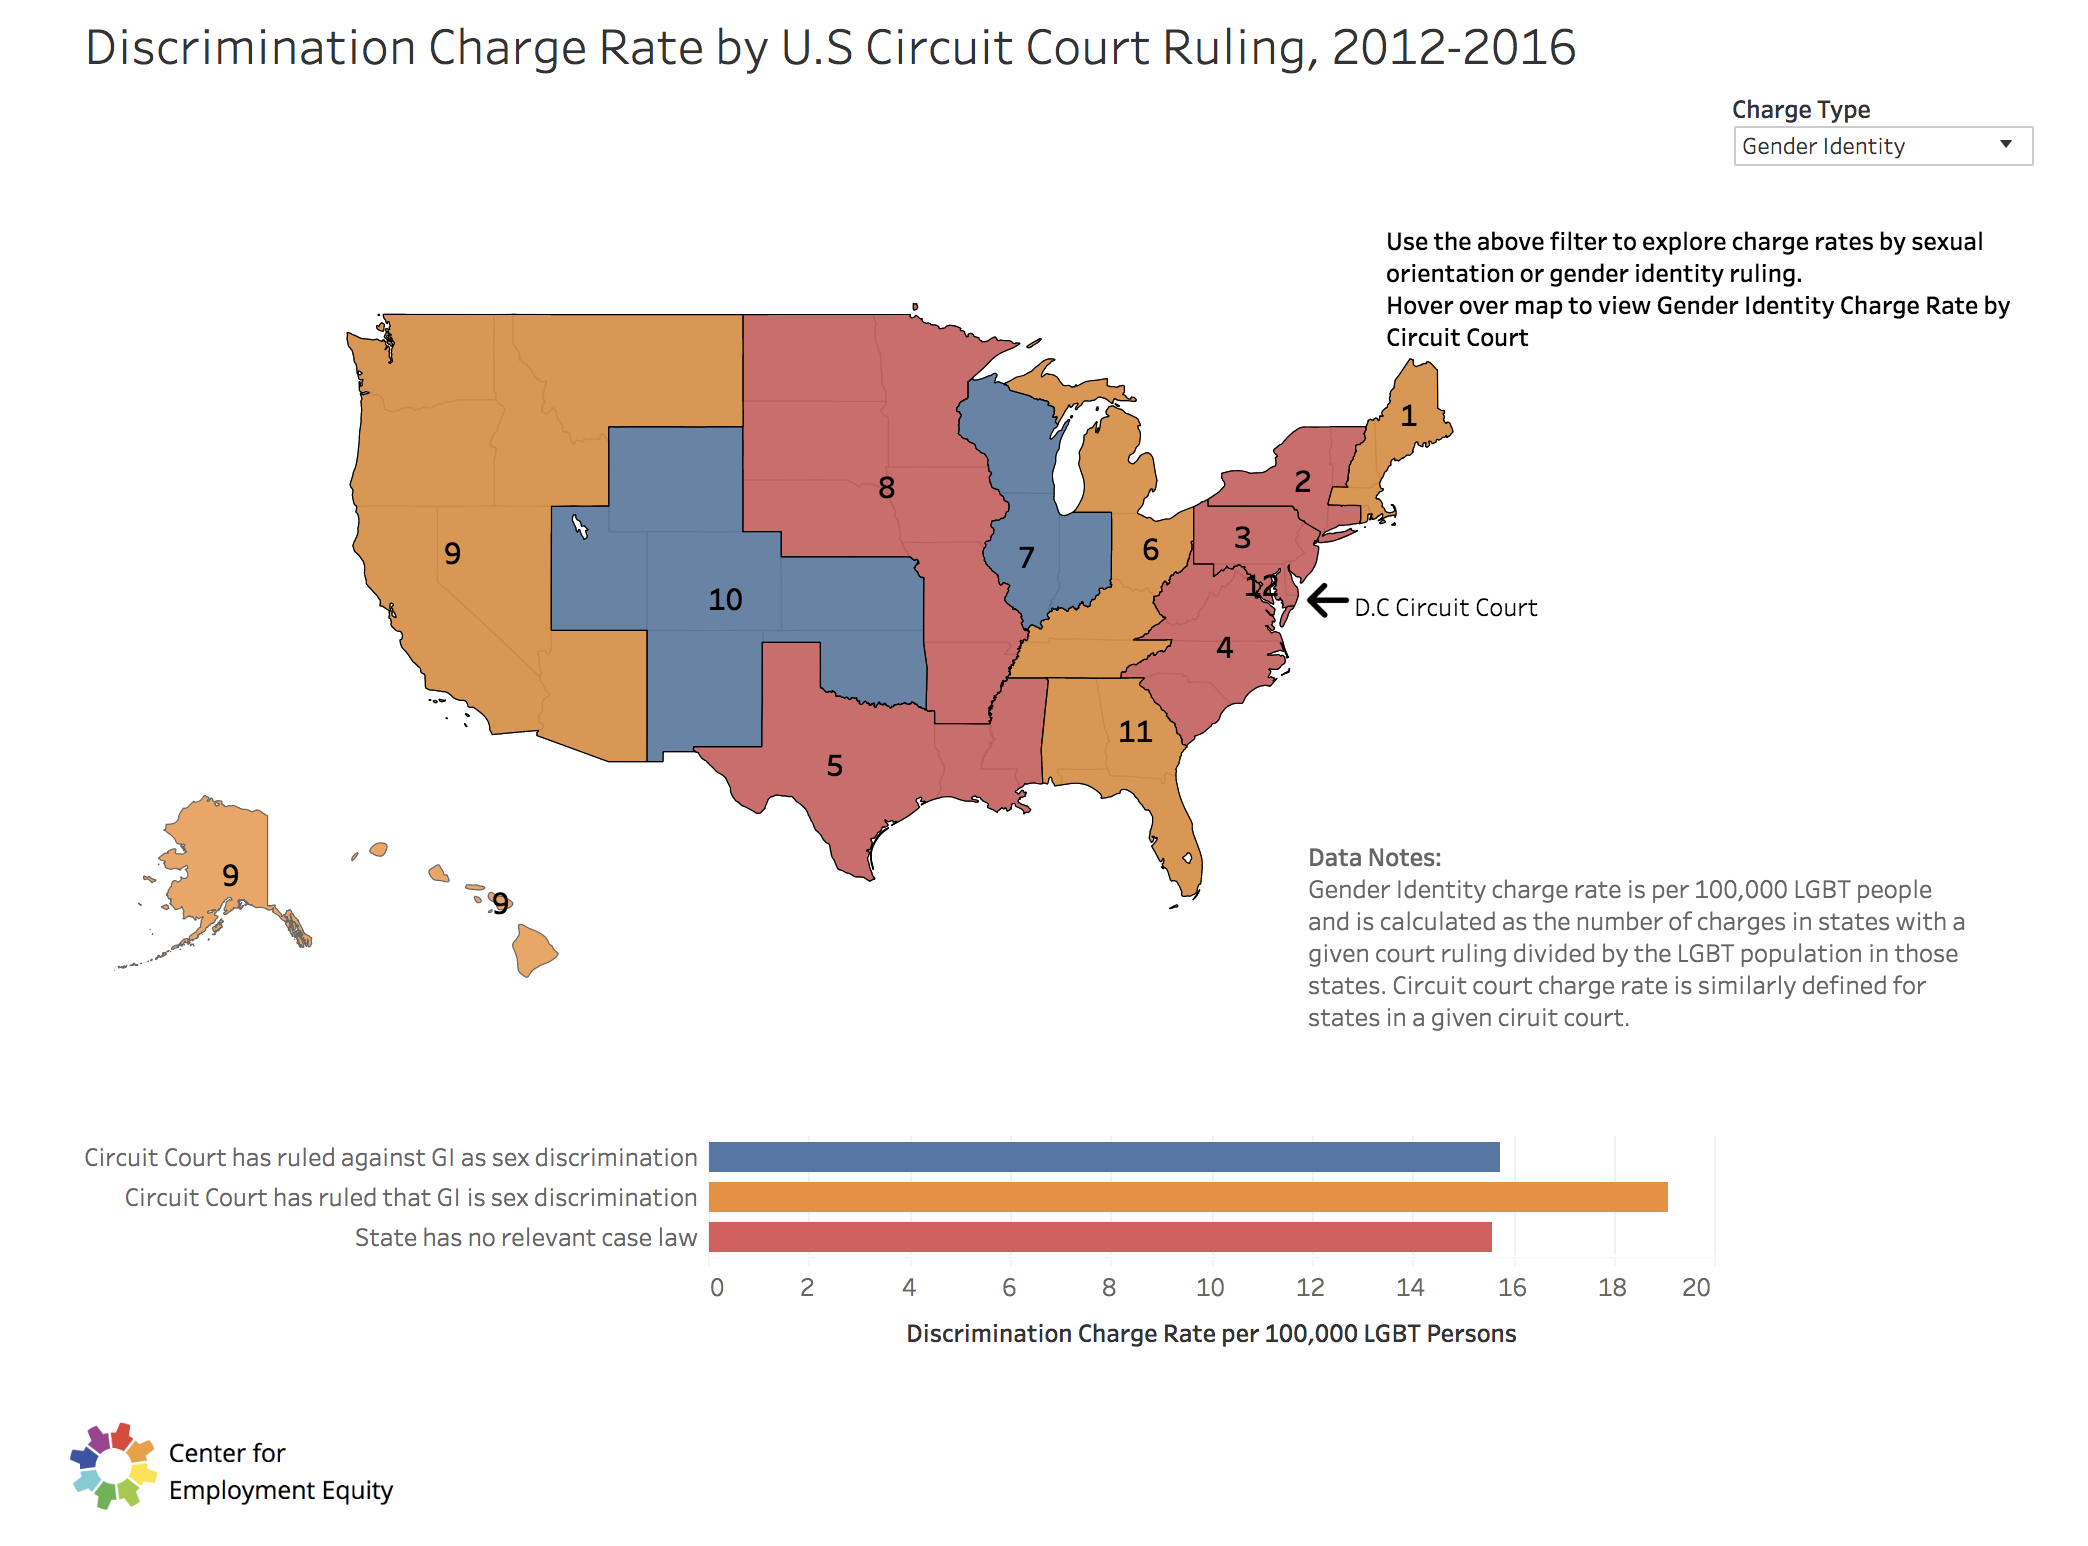 Sexual Orientation or Gender Identifcation Discrimination Charge Rates, by US Circuit Courts